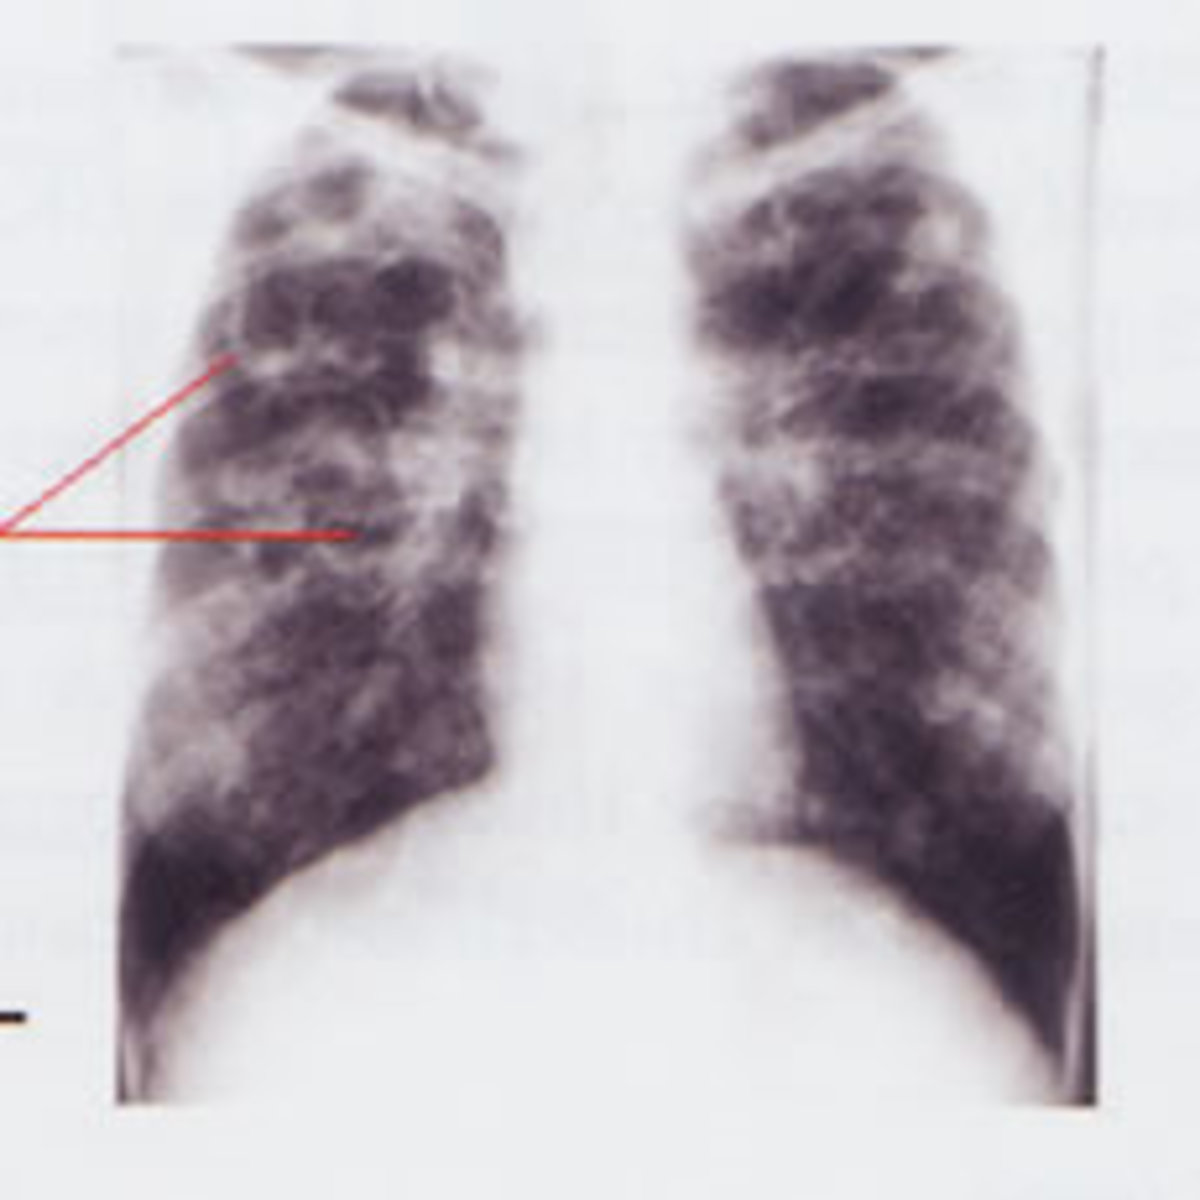 The main function of the Lungs is to provide gas exchange between inspired air (supplying oxygen) and blood in the pulmonary circle.